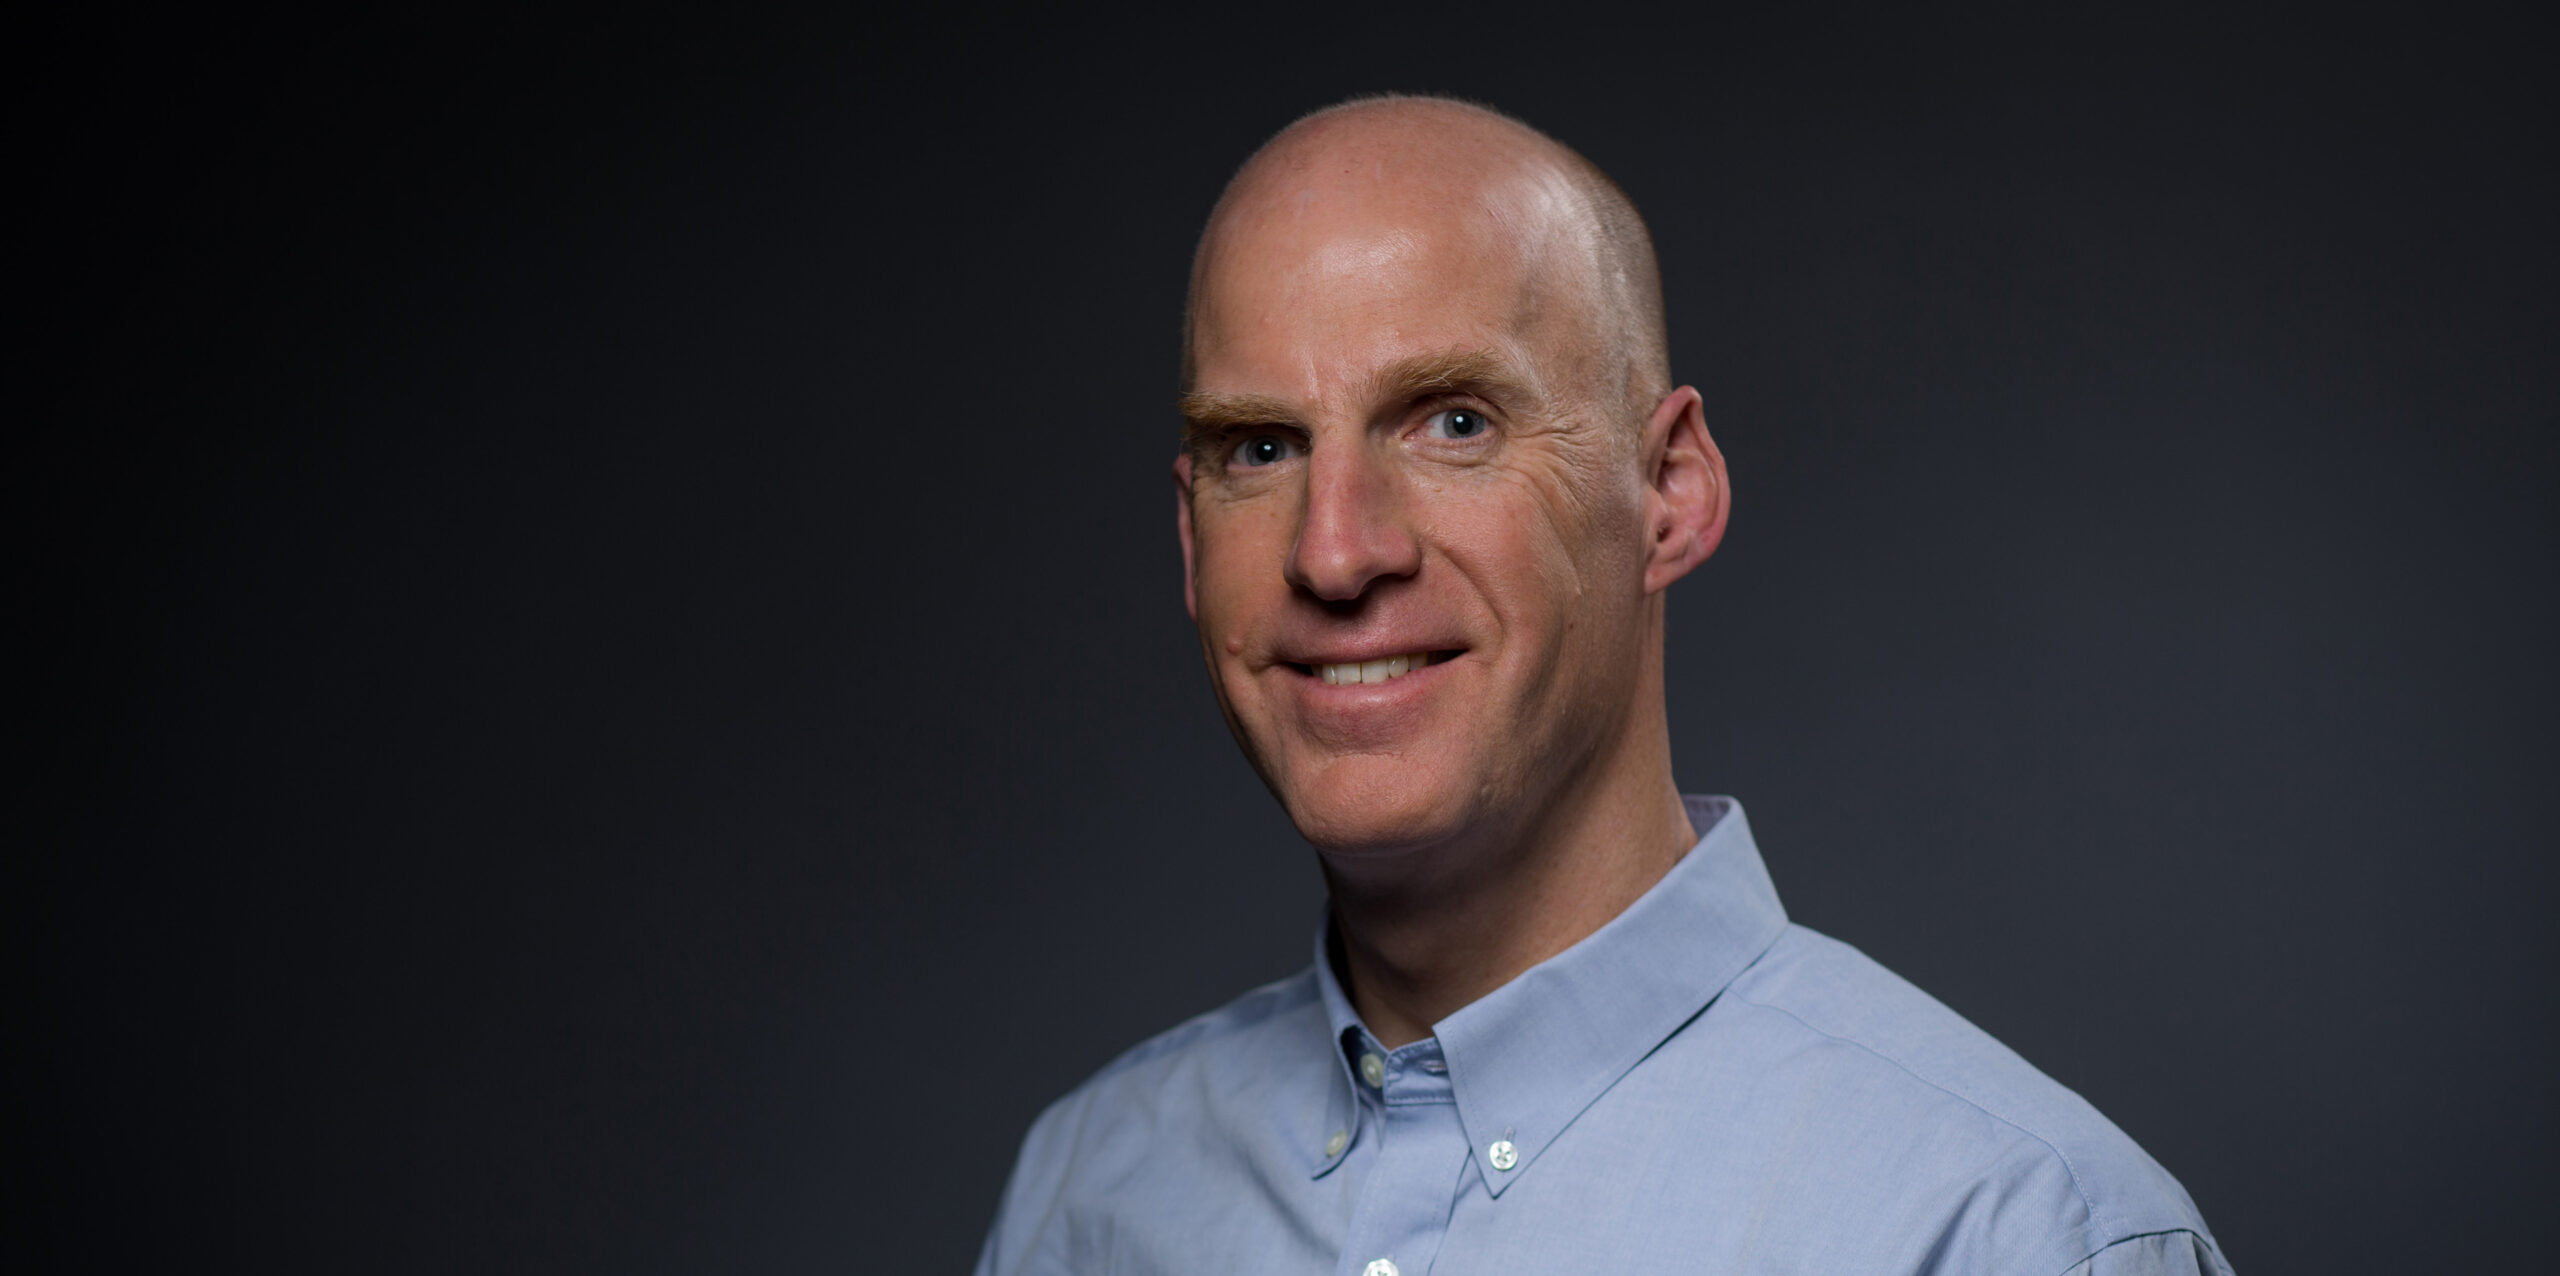 Architect Chris Downey in a blue shirt with a dark background.